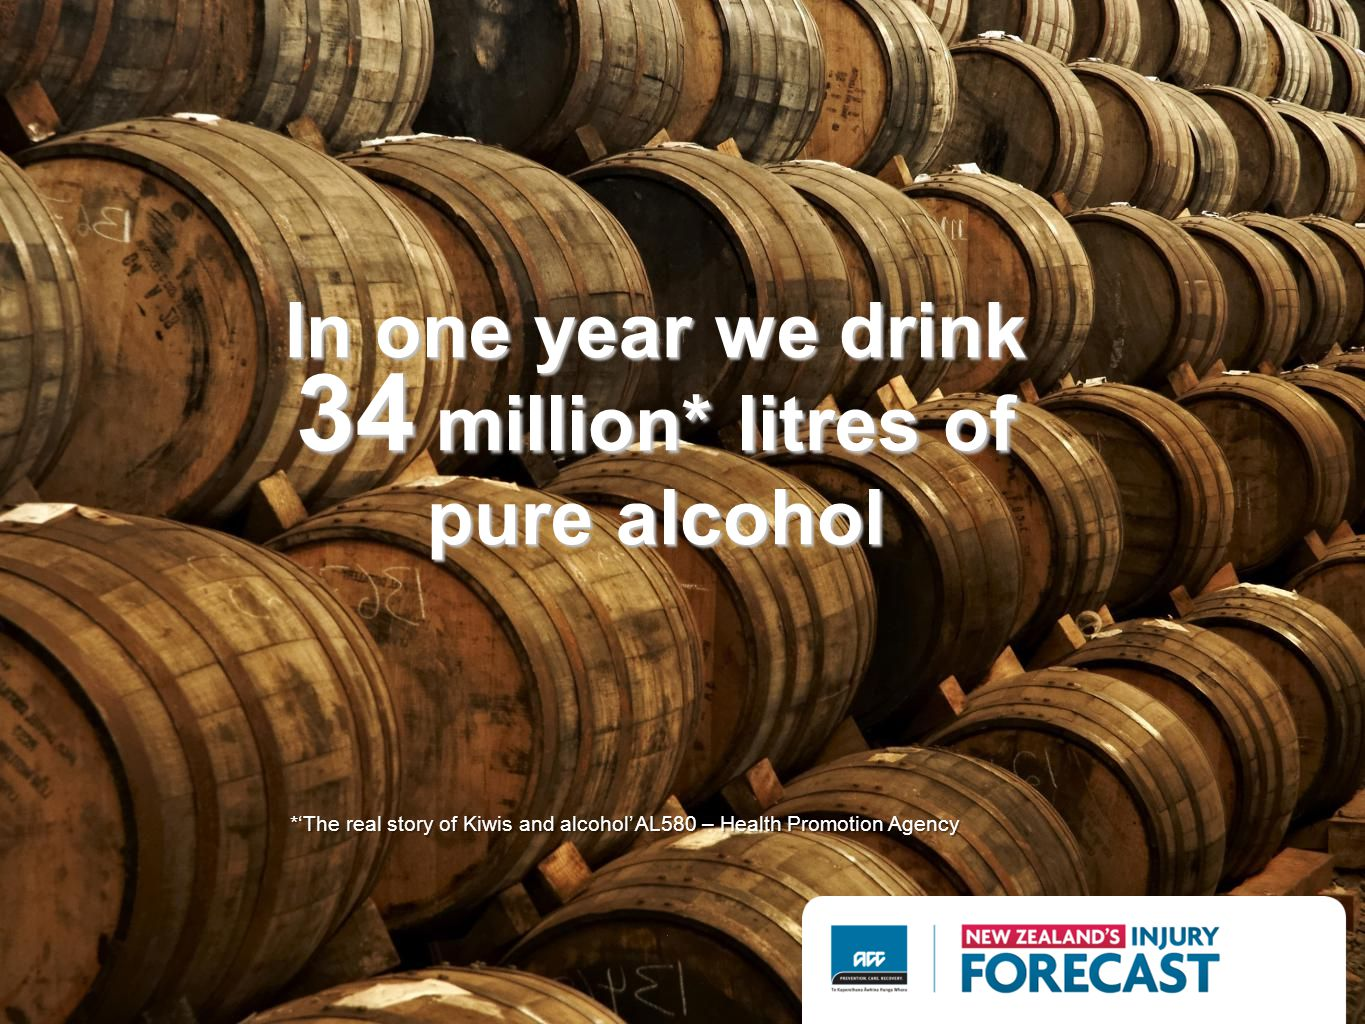 In one year we drink 34 million* litres of pure alcohol *The real story of Kiwis and alcohol AL580 – Health Promotion Agency